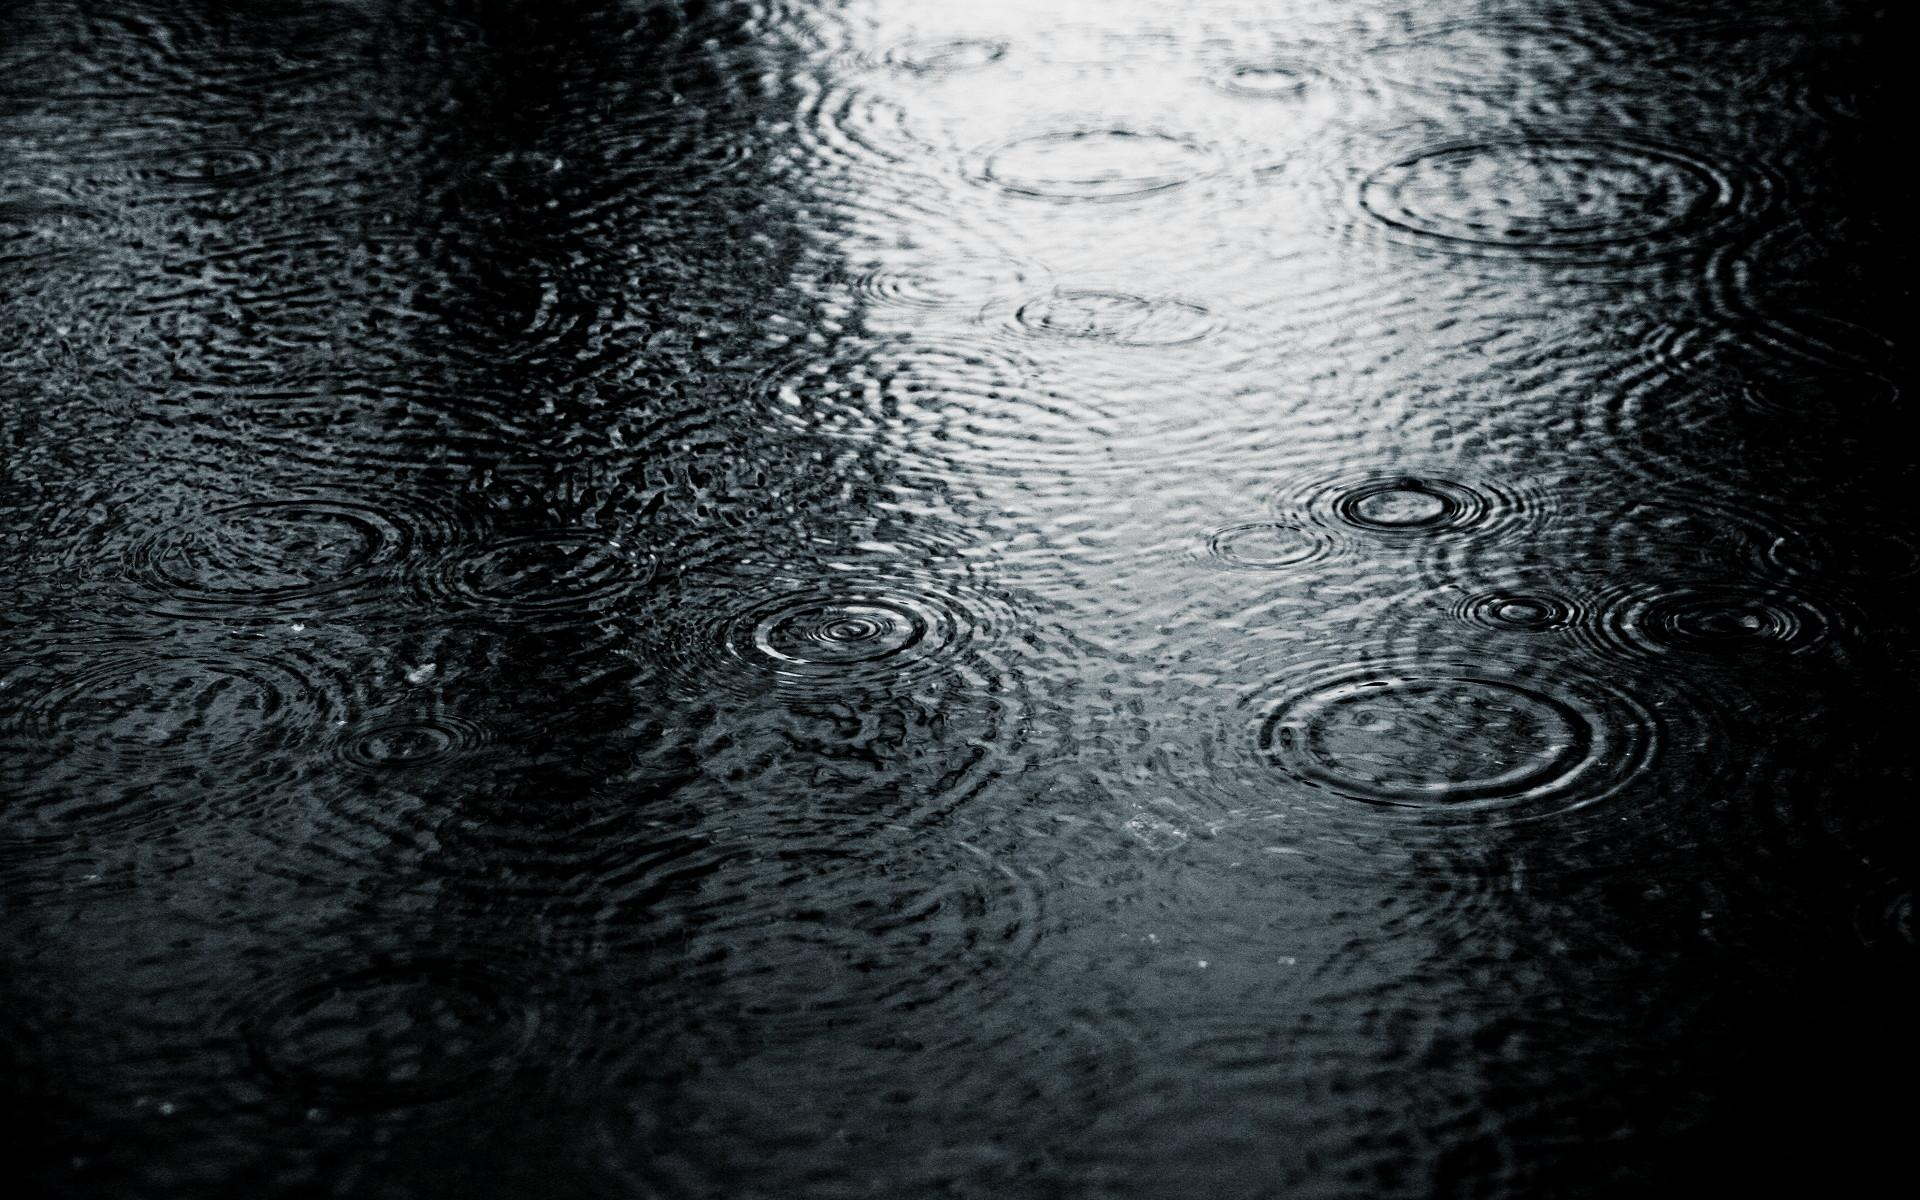 Rain Photography wallpapers HD quality